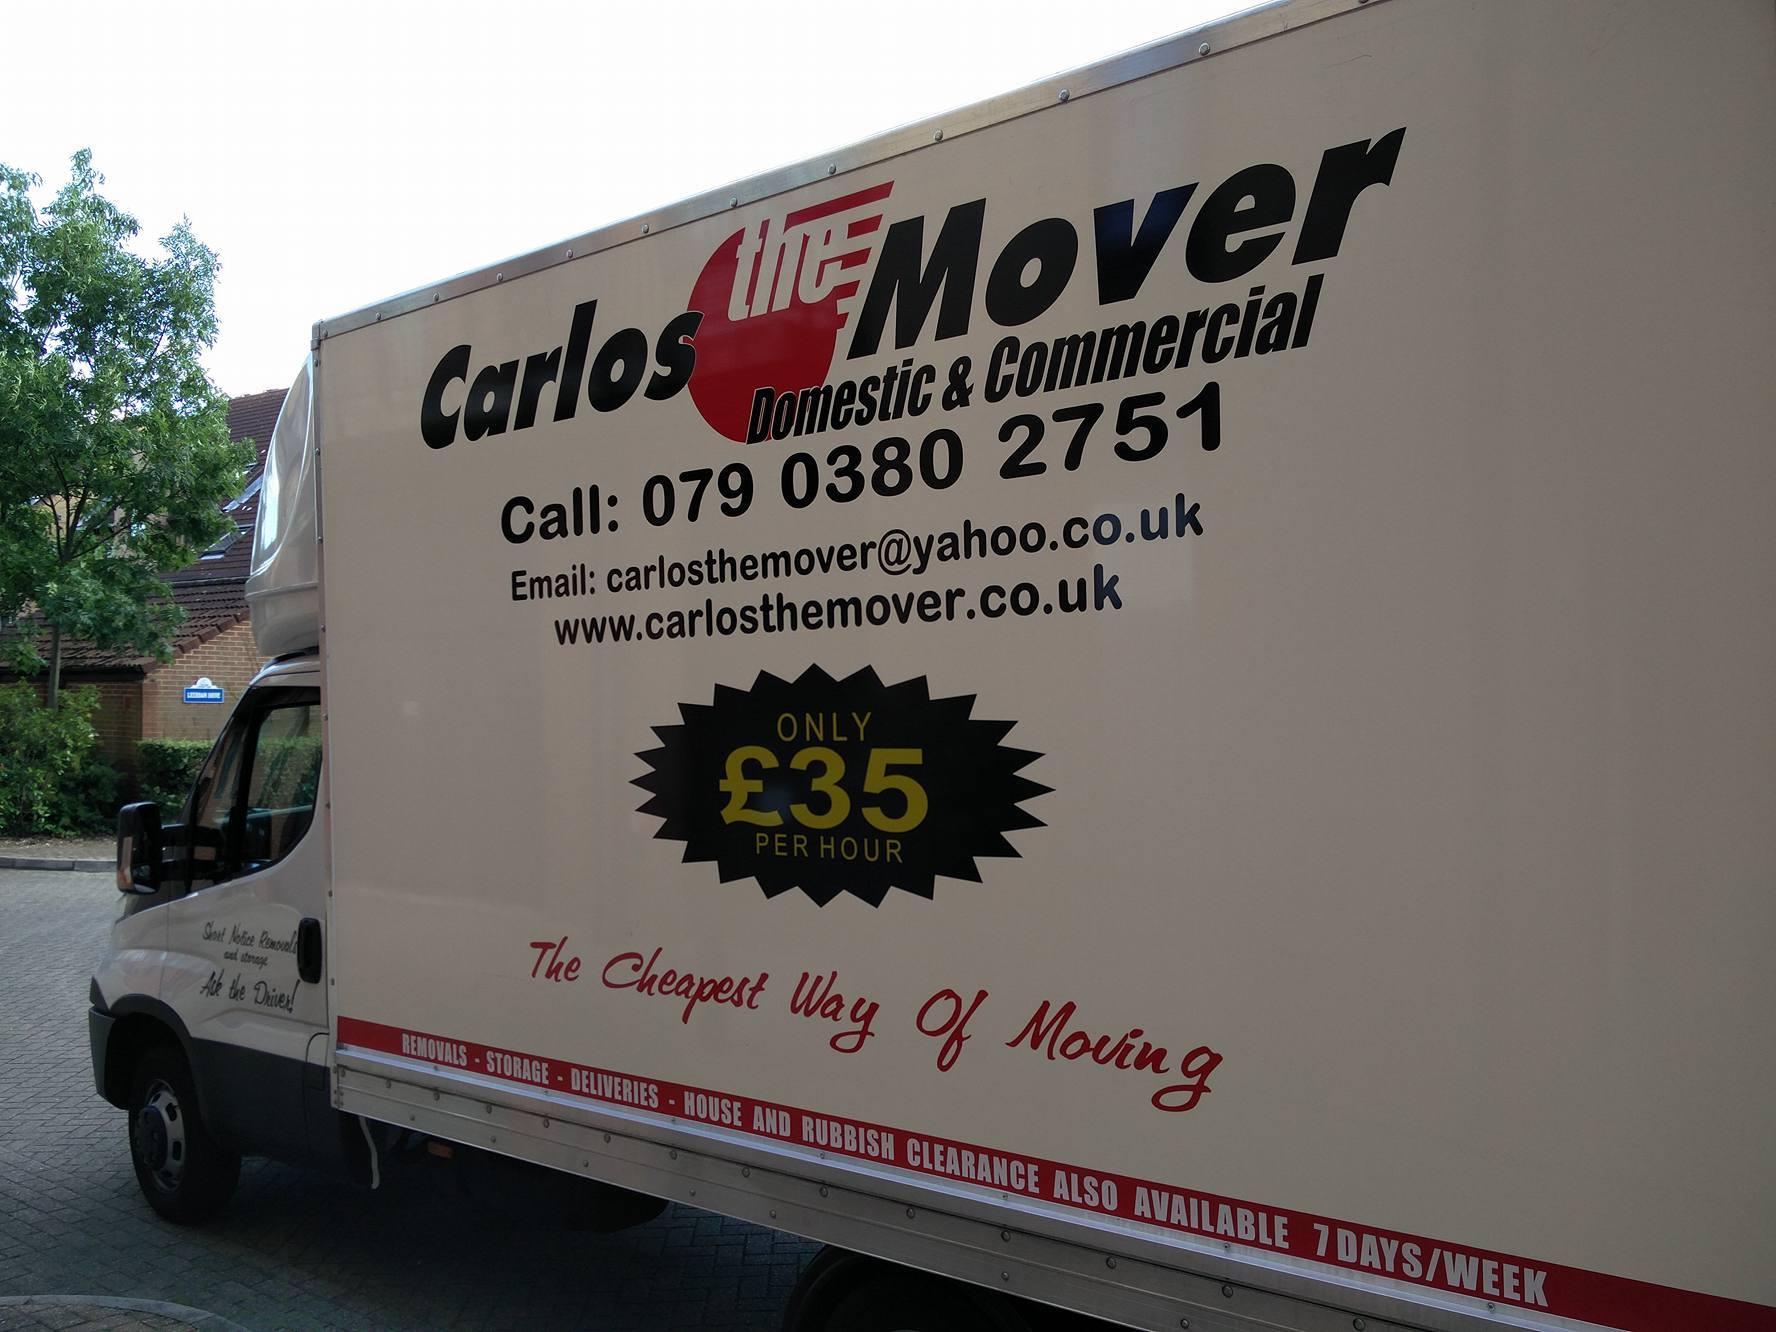 carlos-the-mover-uk-transport-londra